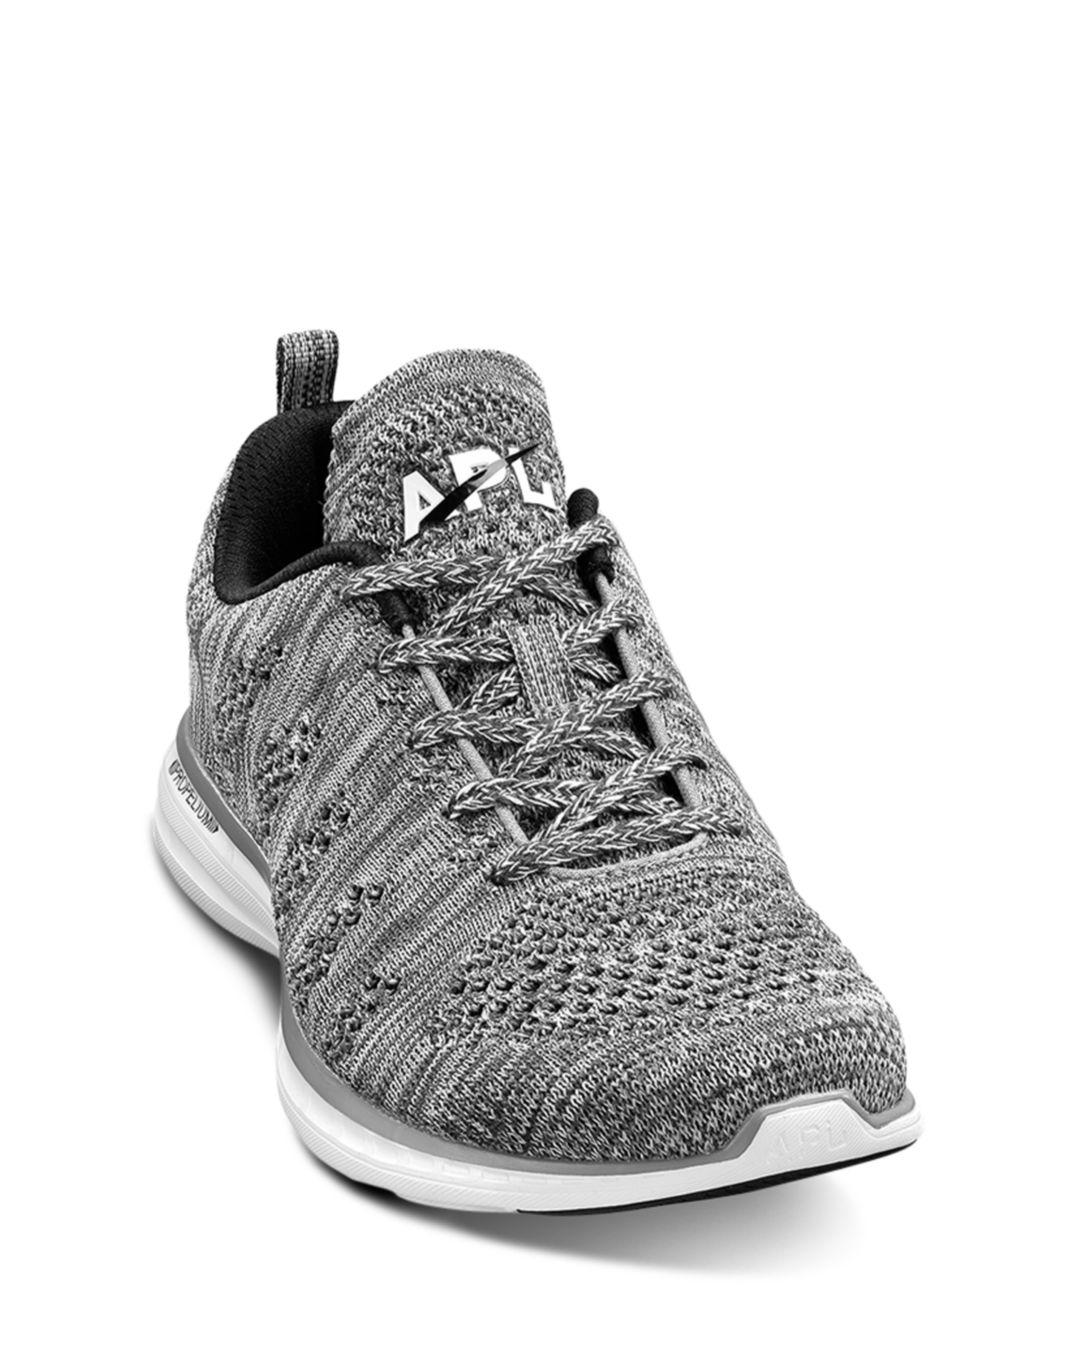 68645f9bf4d5 Apl  Athletic Propulsion Labs. Gray Athletic Propulsion Labs Women s  Techloom Pro Knit Low - Top Sneakers